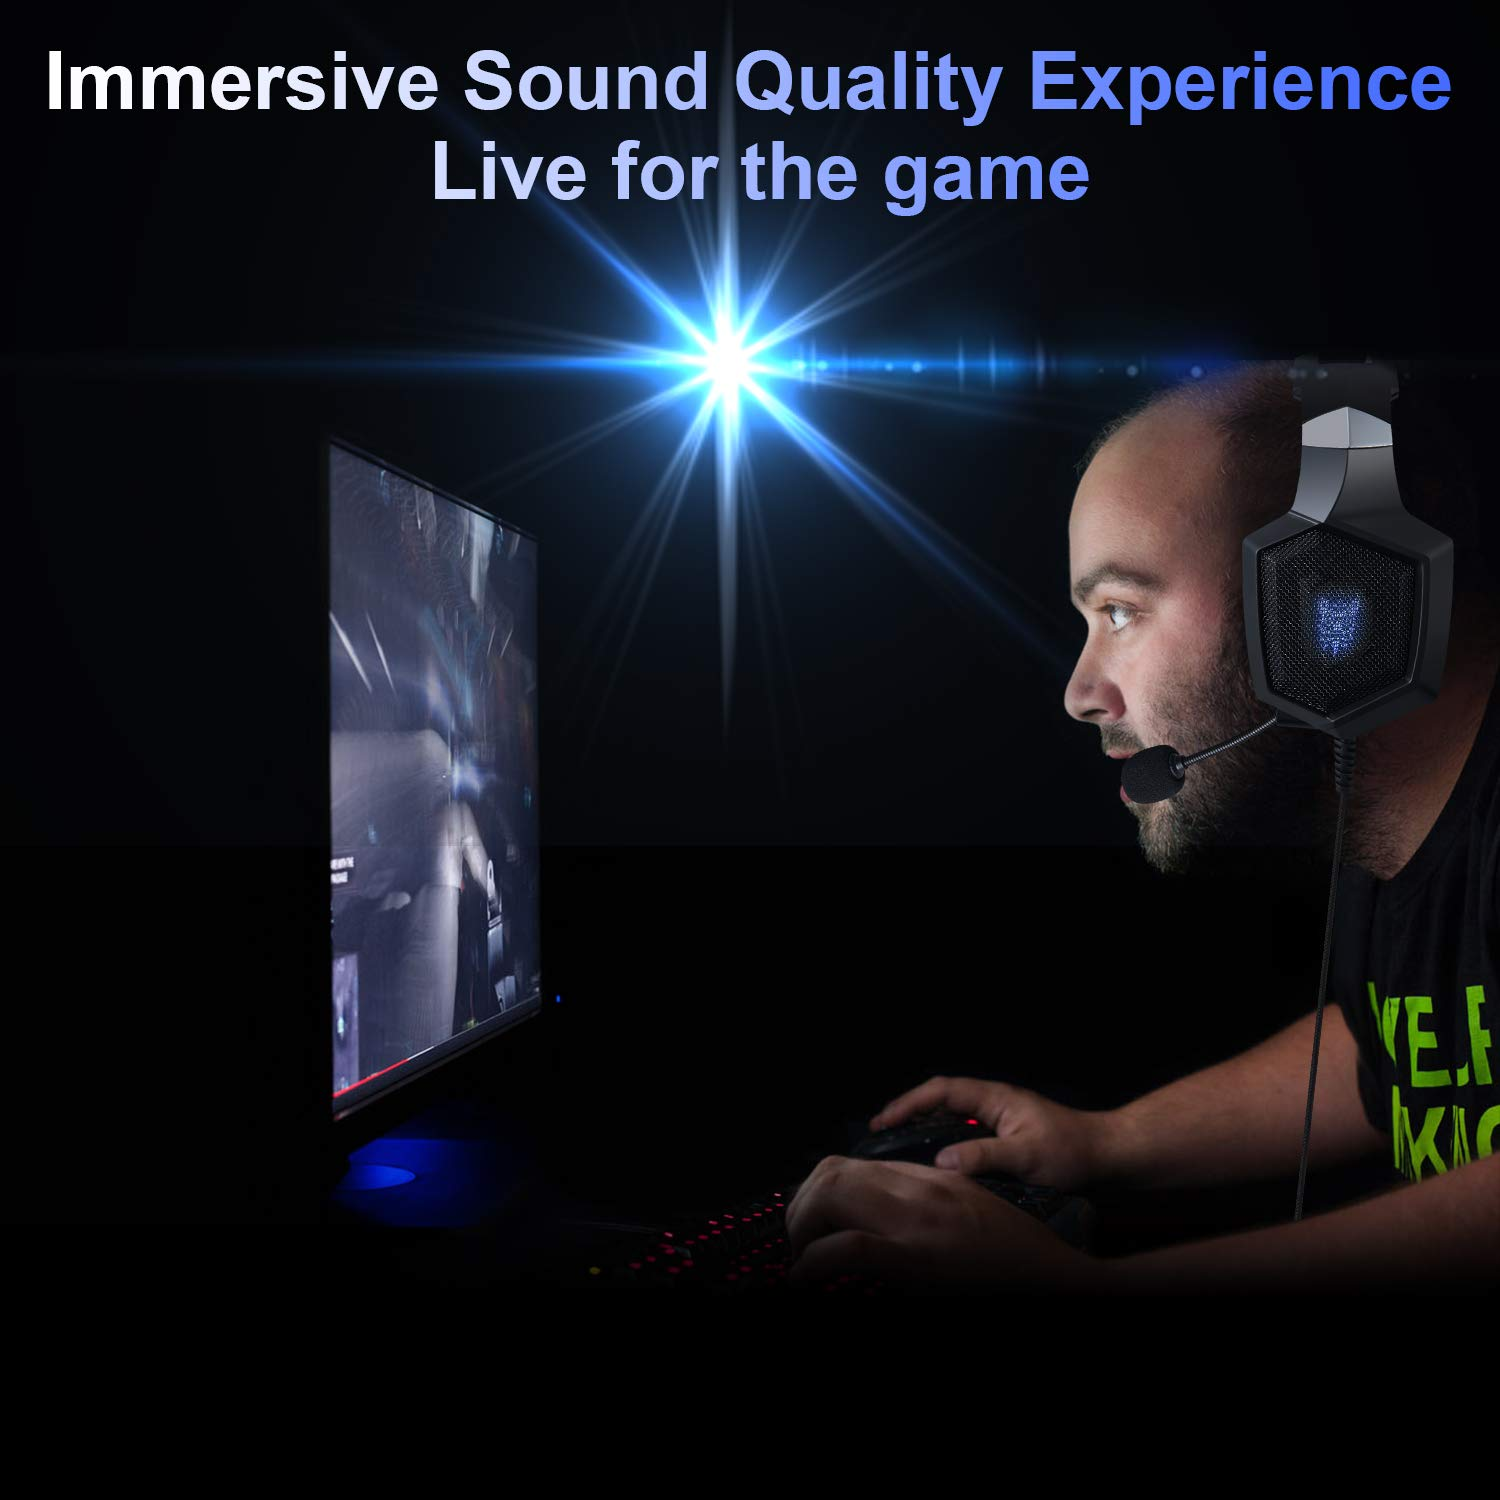 Gaming Headset XBox One S PS4 Nintendo Switch ONIKUMA Stereo PS4 Headset with RGB Breathing LED Light Noise Reduction/Volume Control/Over-Ear xbox one Headset with Mic for Laptop PC Mac Computer and Smartphone